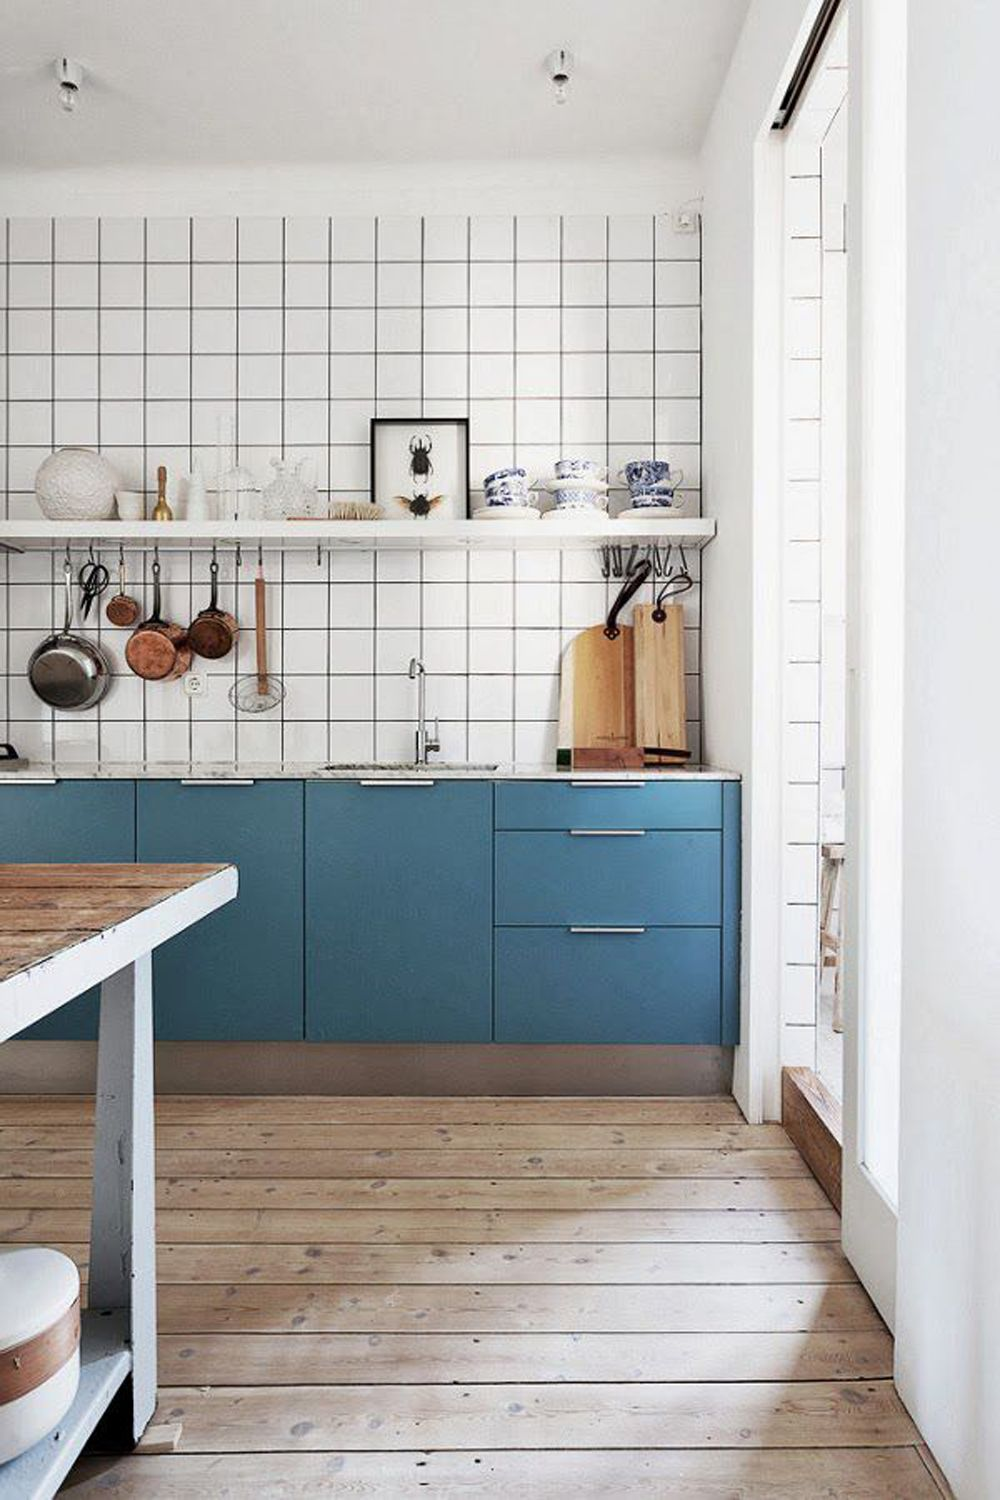 Our Favorite Kitchen, But Would Like Hex Tile Backsplash, Butcher Block  Countertop, And Farmhouse Sink. Like The Wood Floor Cabinets The Dark Grout  With The ...